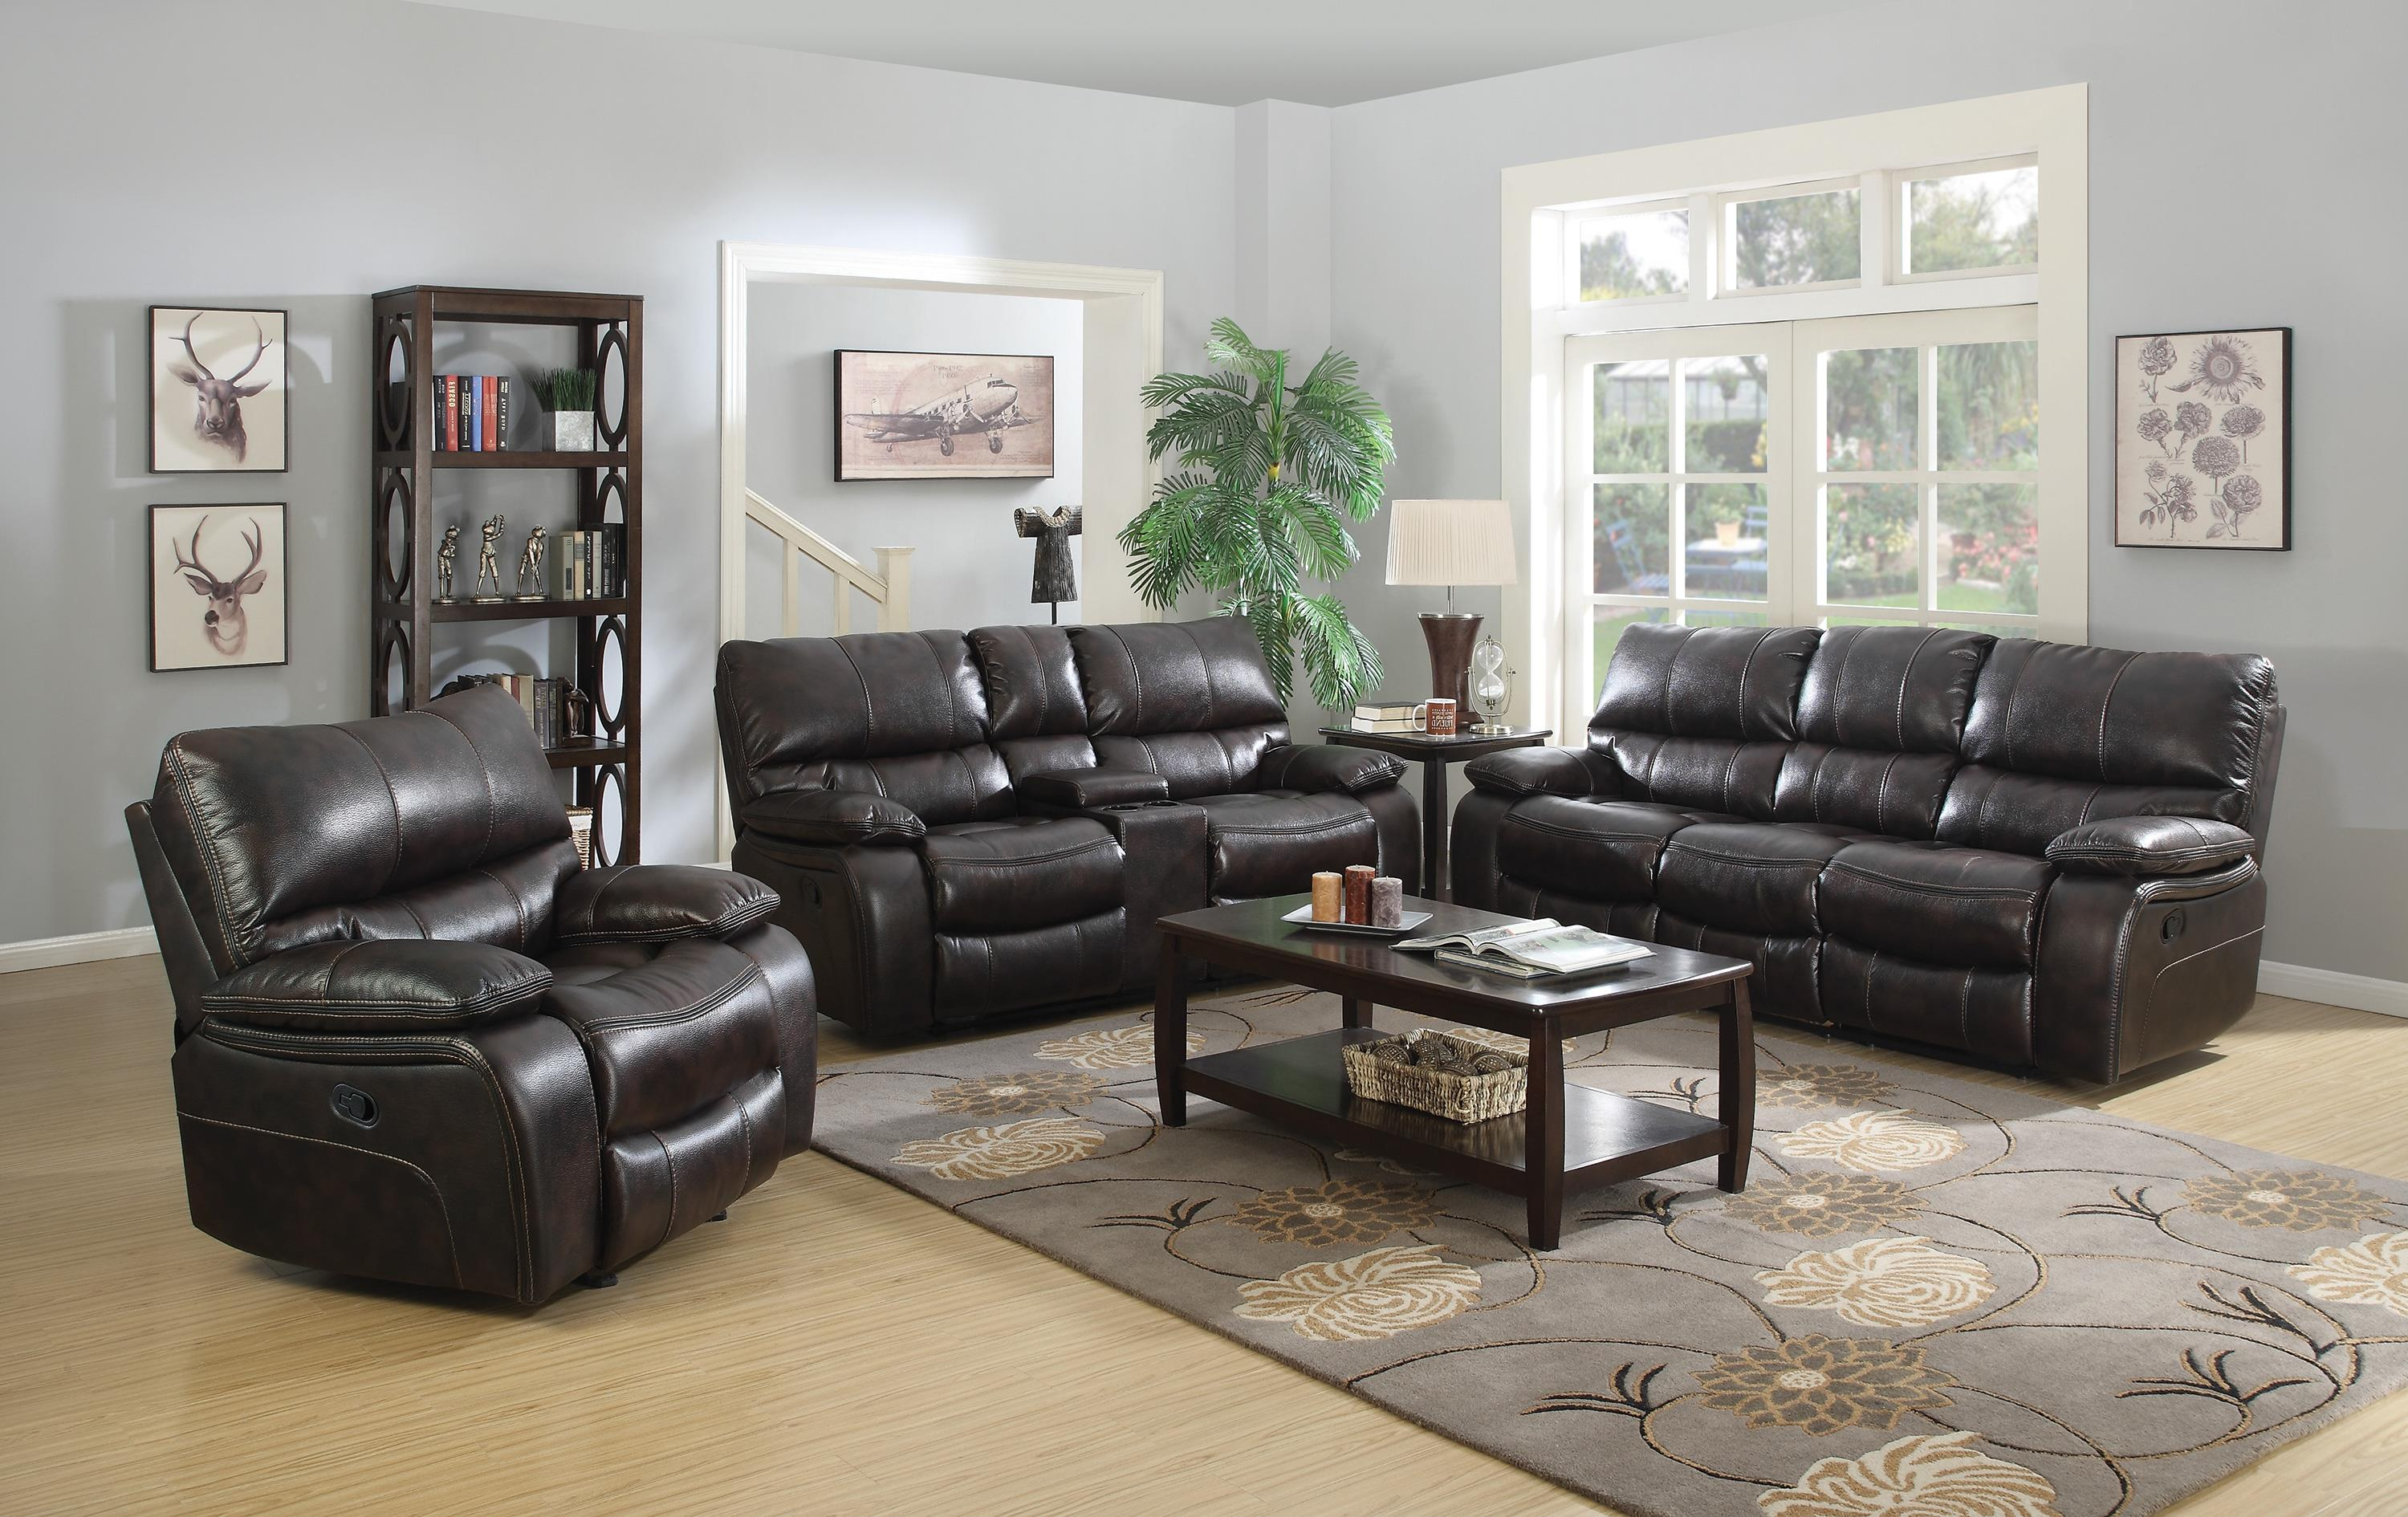 Coaster willemse reclining living room group value city for Living room furniture groups